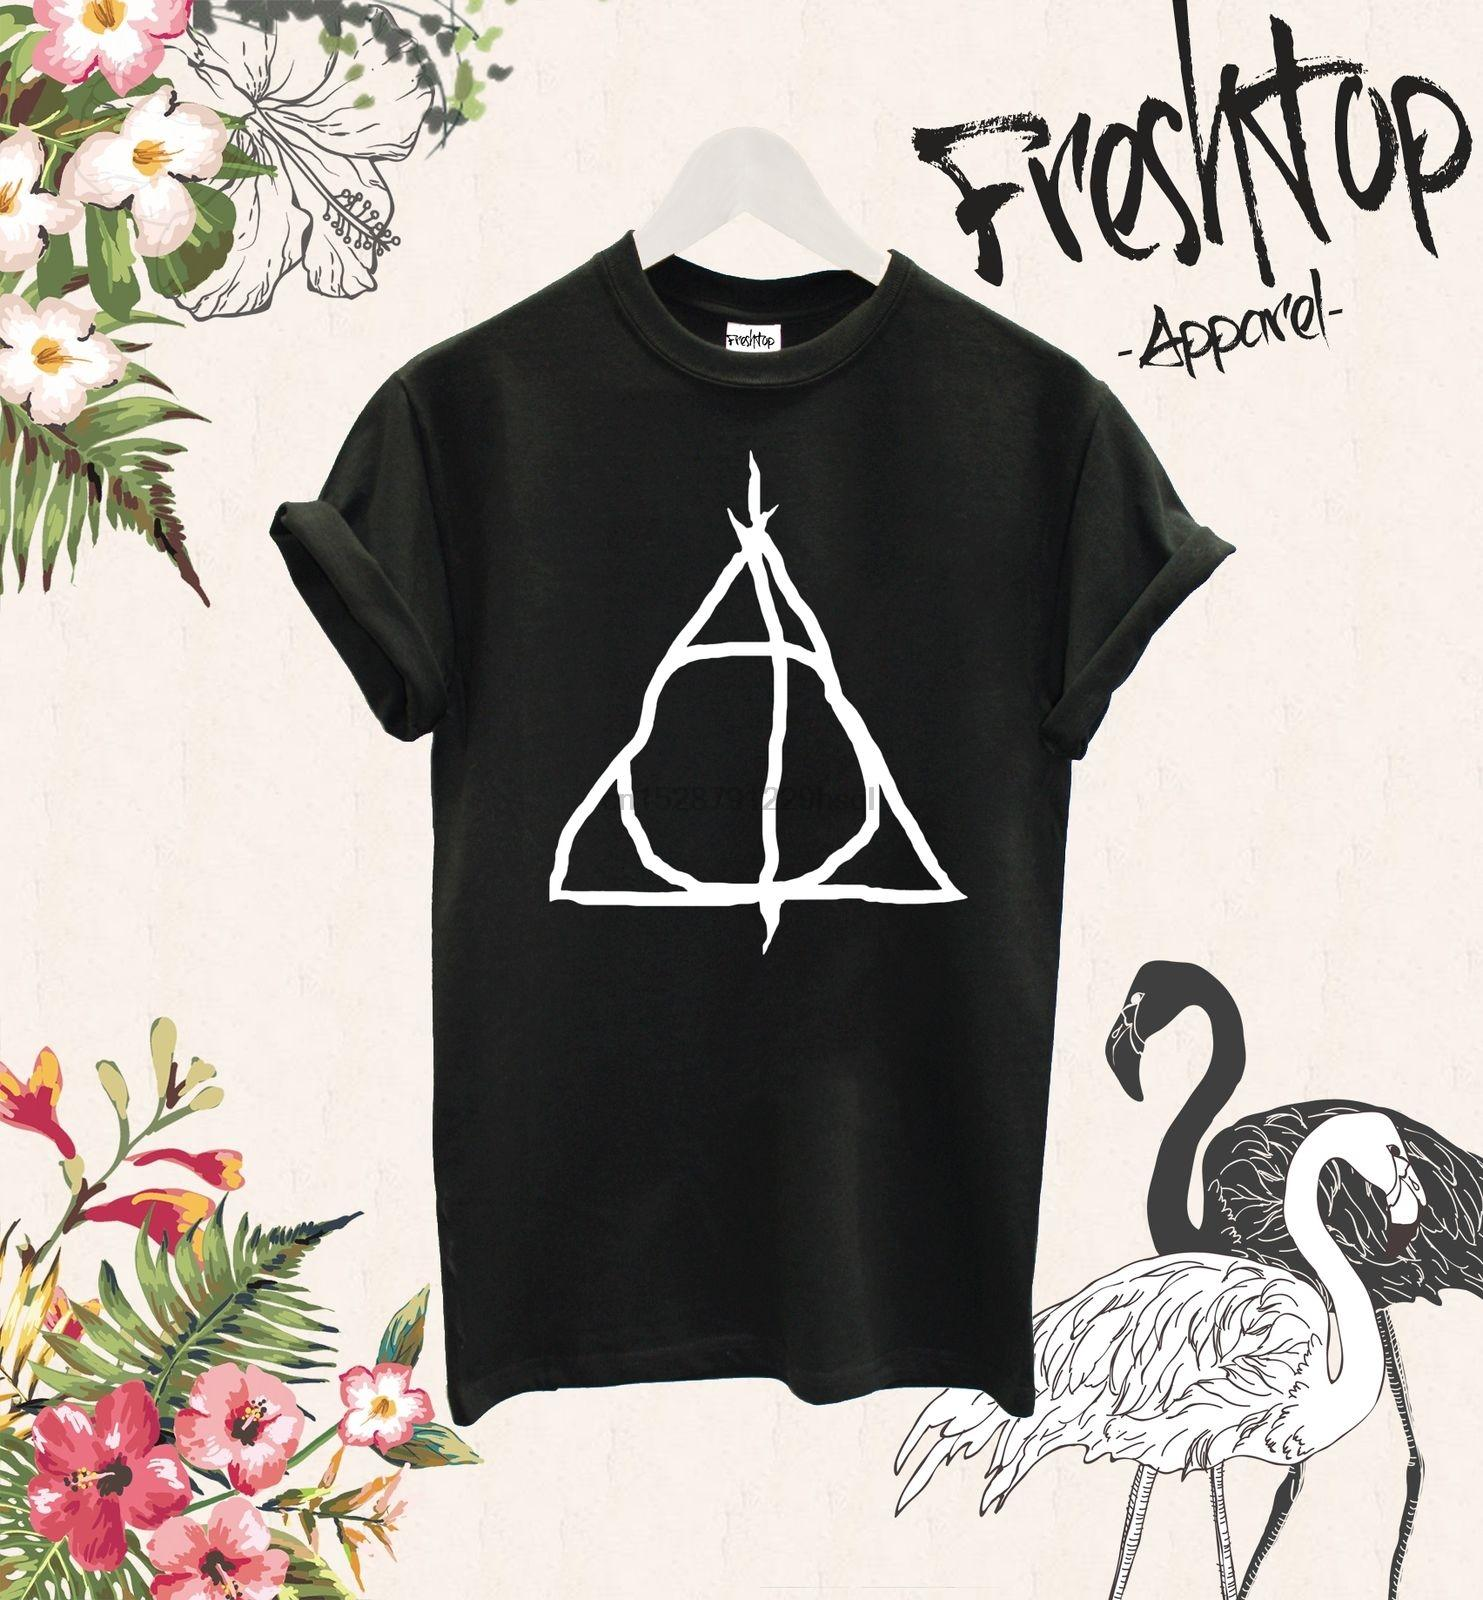 Deathly Hallows T Shirt Alan Rickman Expecto Patronum Hogwarts Printed T Shirt Summer Men Top Tee T-shirt Men 2020 New